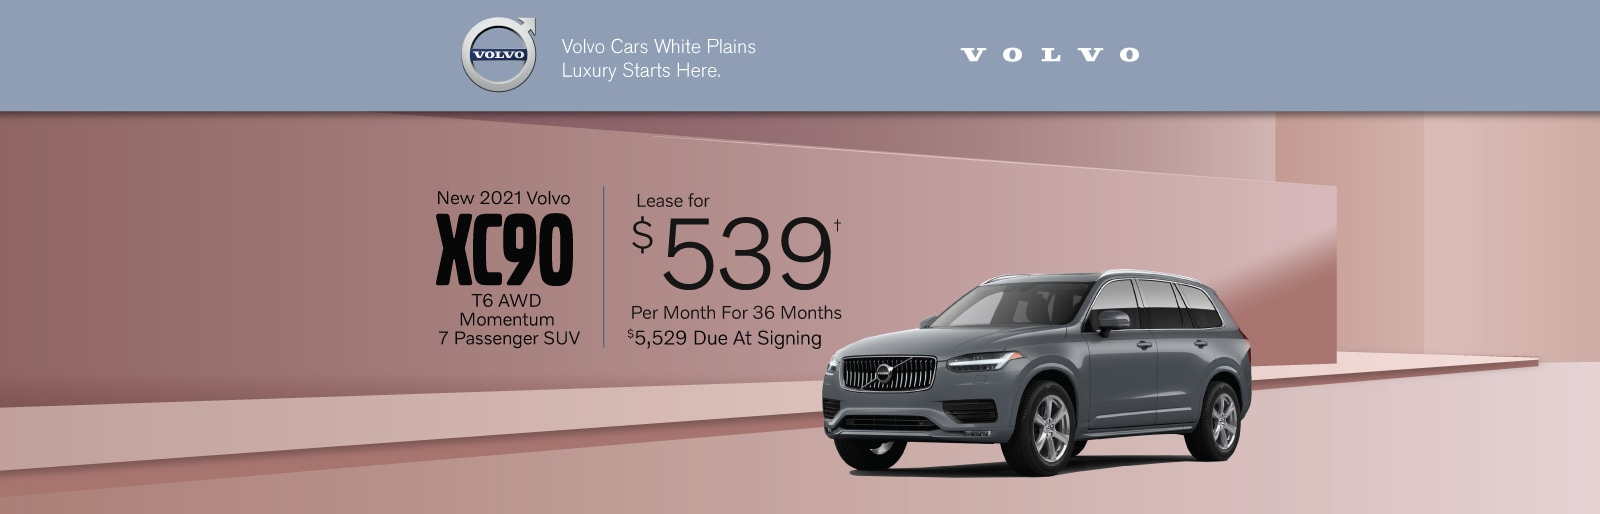 Volvo XC90 lease deal image